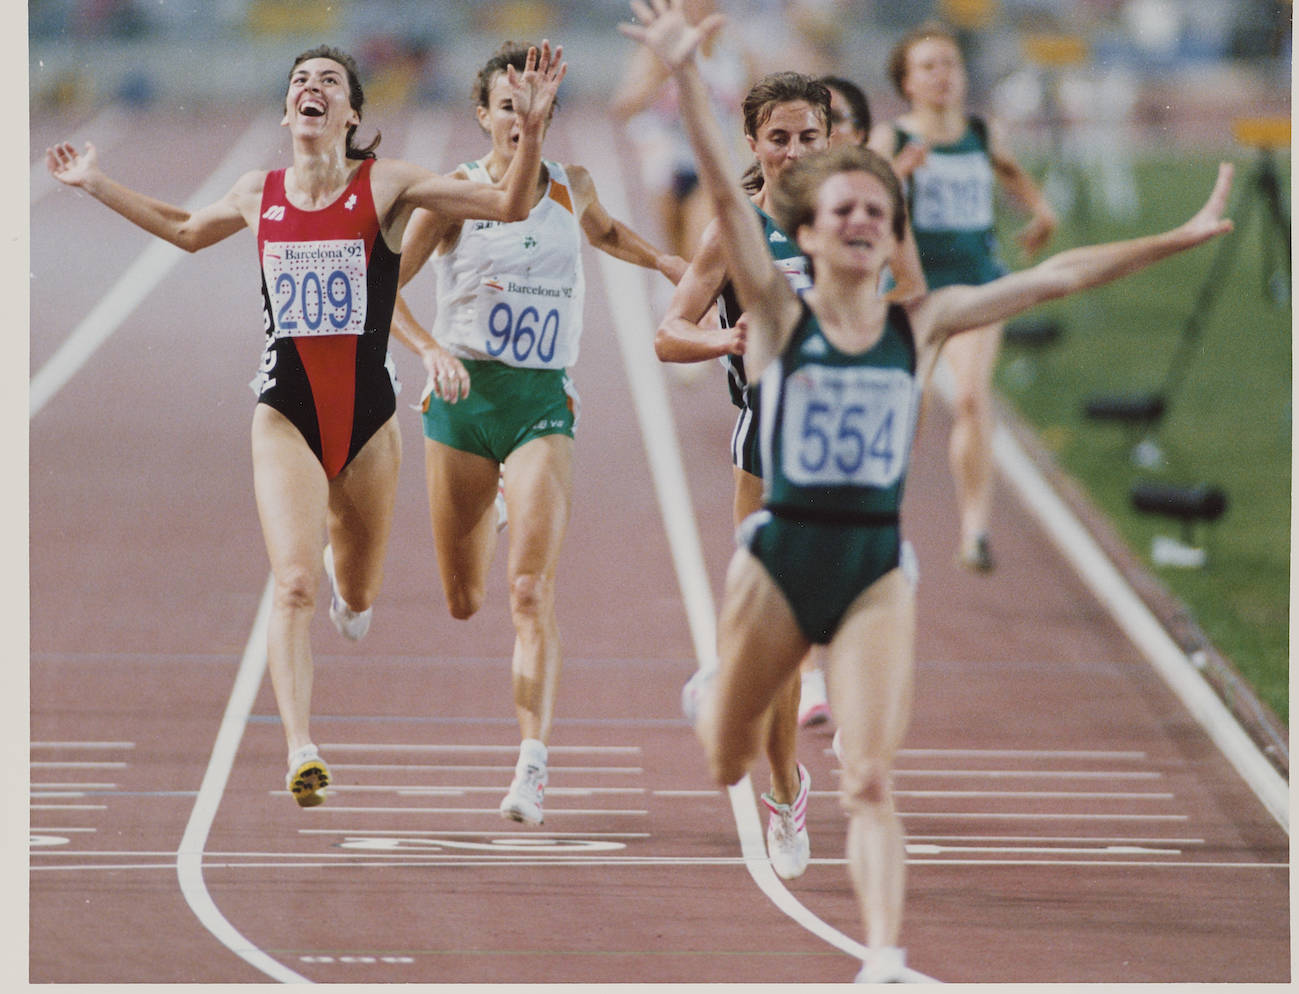 Summer Olympics Barcelona 1992: Track and Field. THE CANADIAN PRESS/files